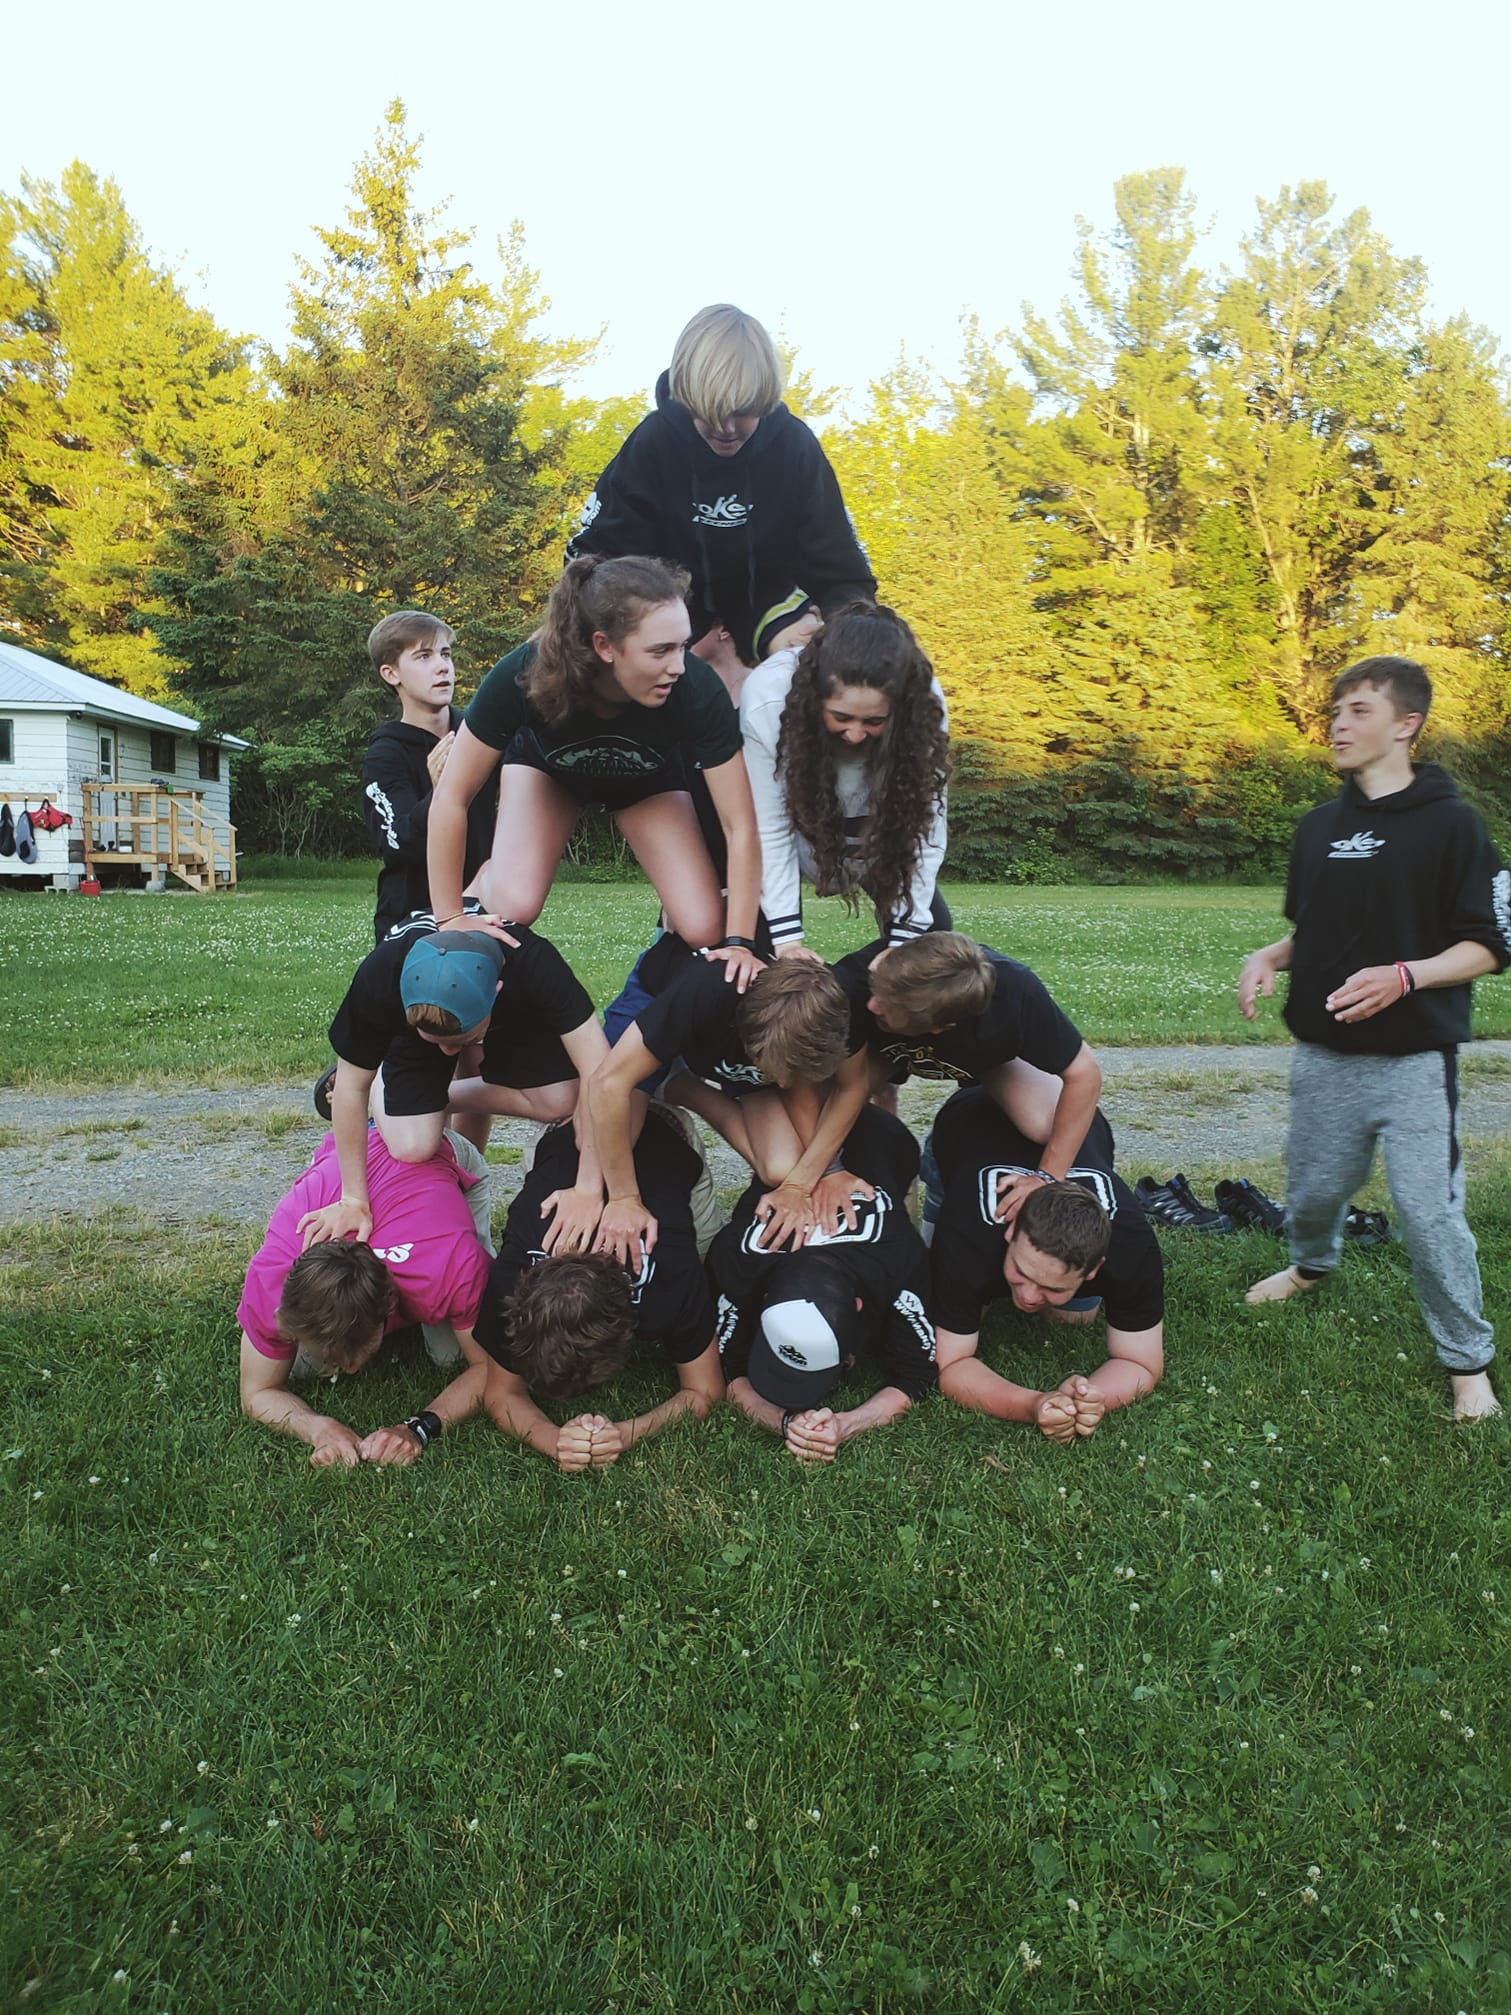 Just one of our team building experiences.